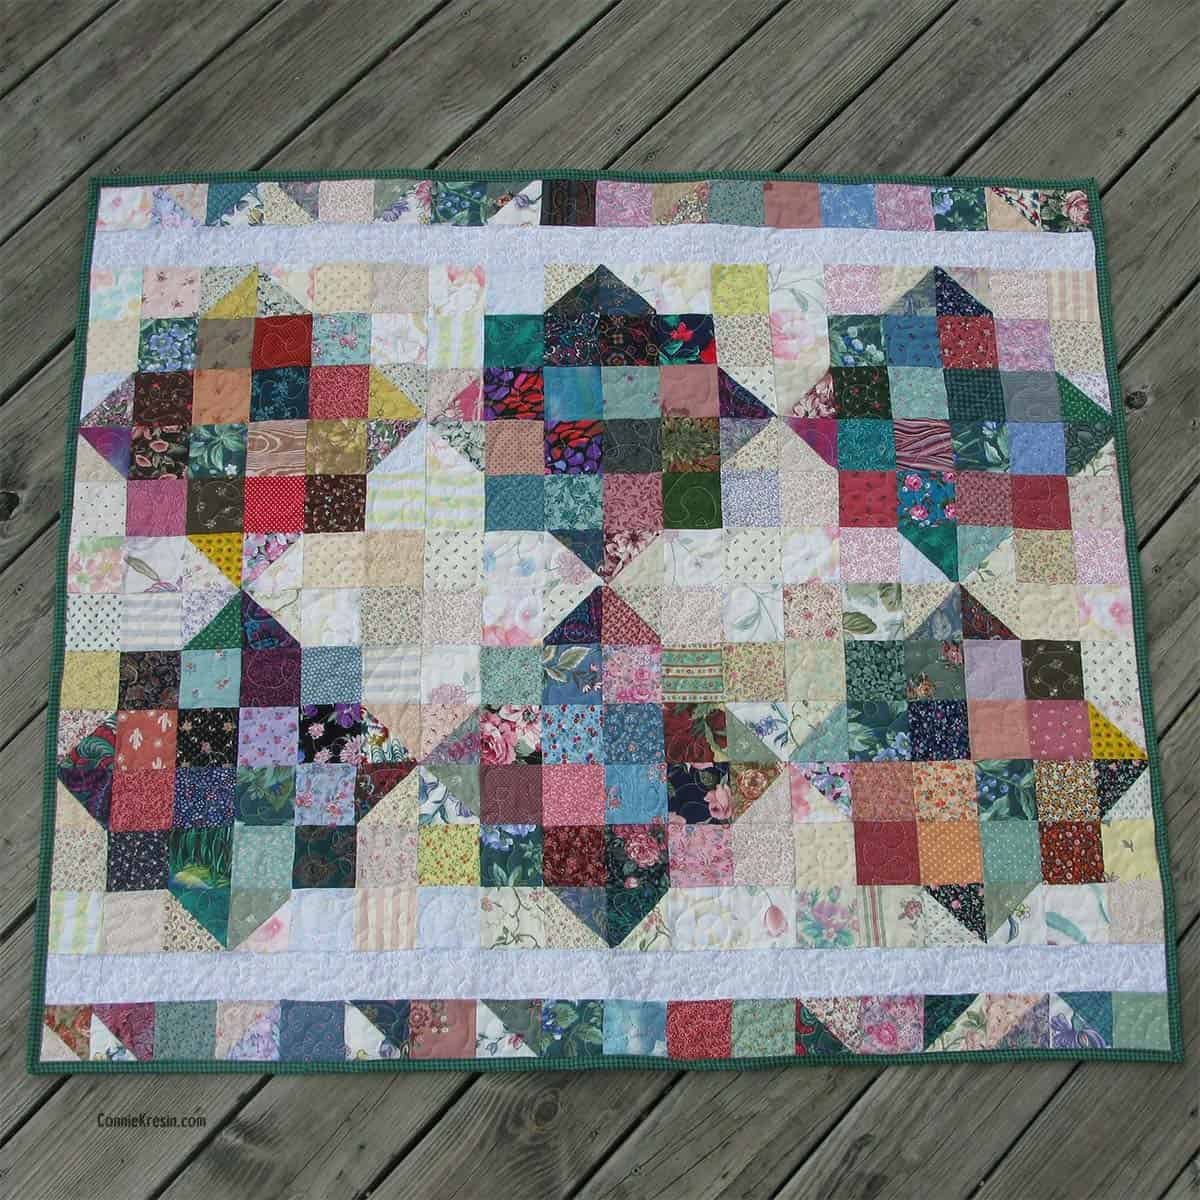 River Scraps baby quilt laying flat on deck